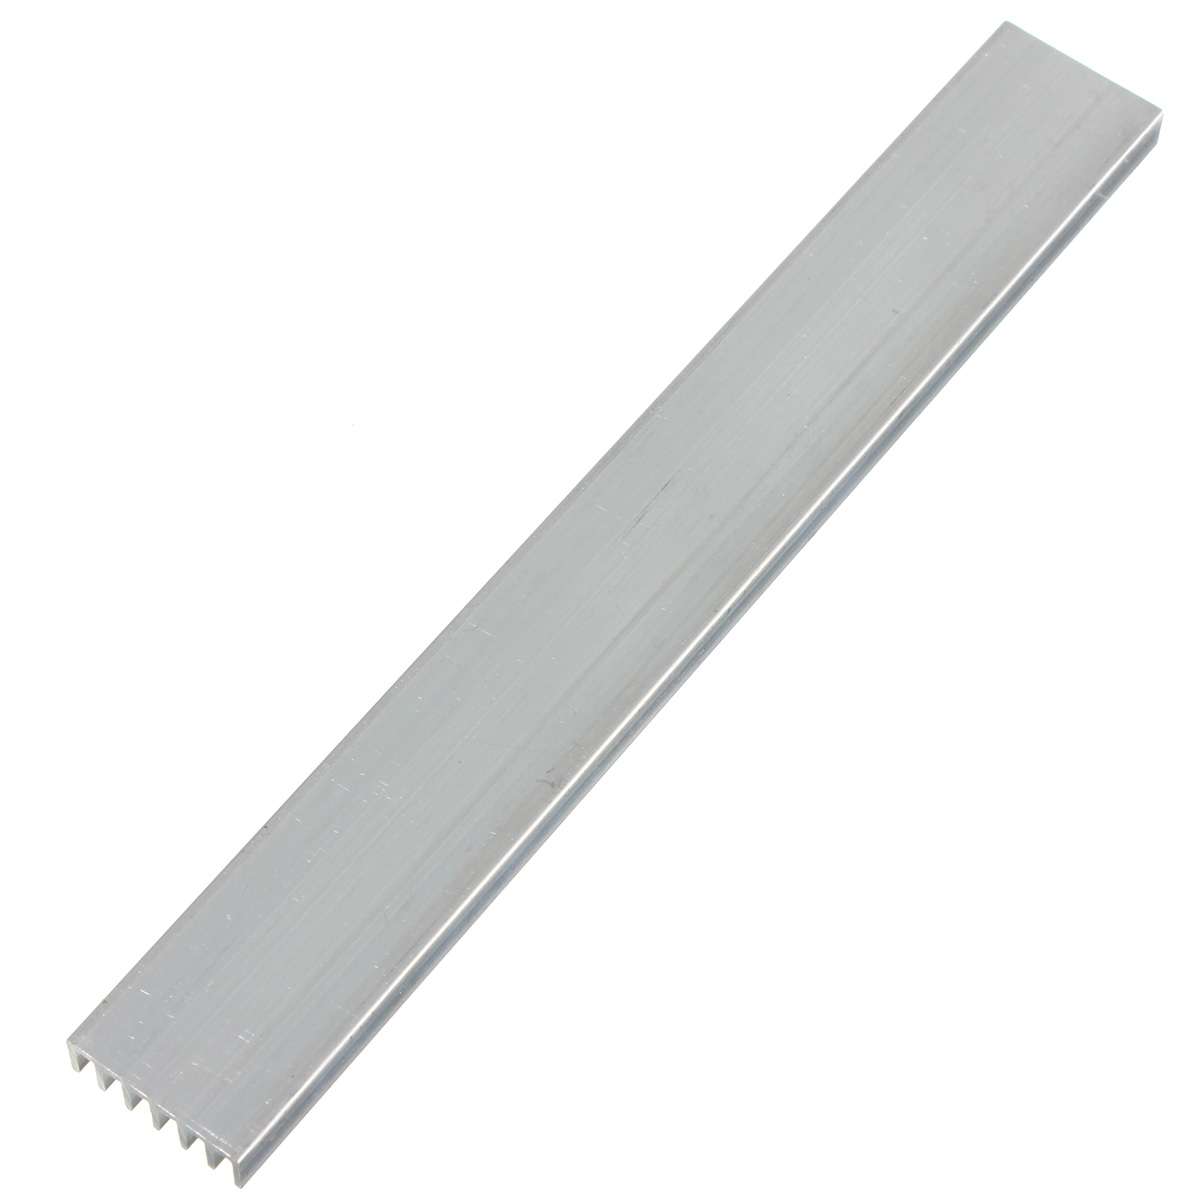 15cm High Power LED Aluminum Heatsink For 1W 3W 5W LED Emitter Diodes Cooling Cooler